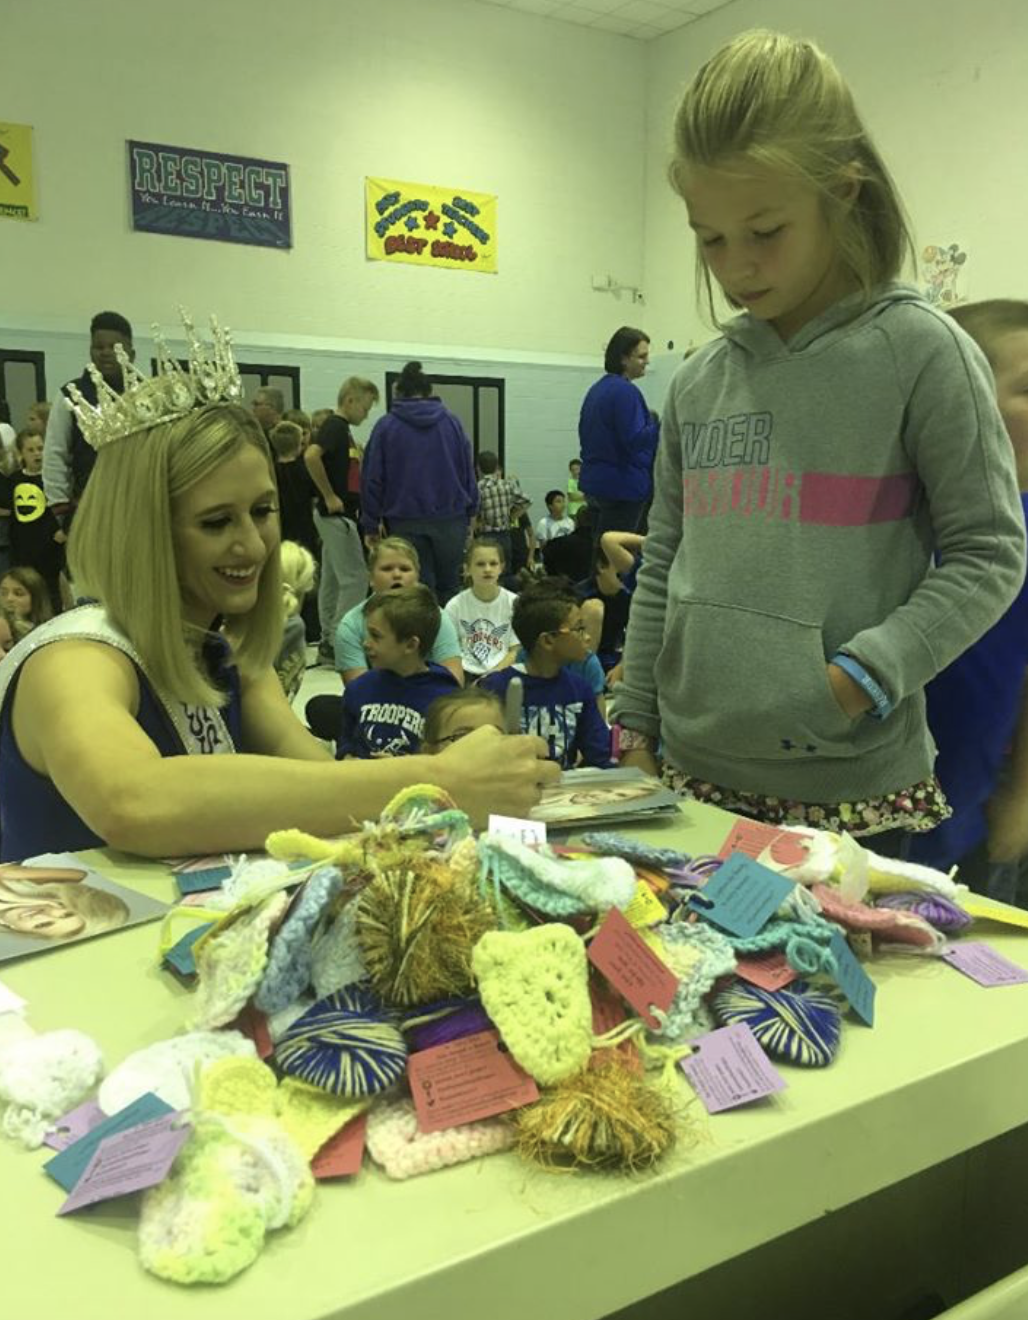 Presenting Hearts for Hope at Garrison Public School. I spoke to grades k-12 about The Peyton Heart Project and discussed suicide prevention, anti-bullying and mental health.